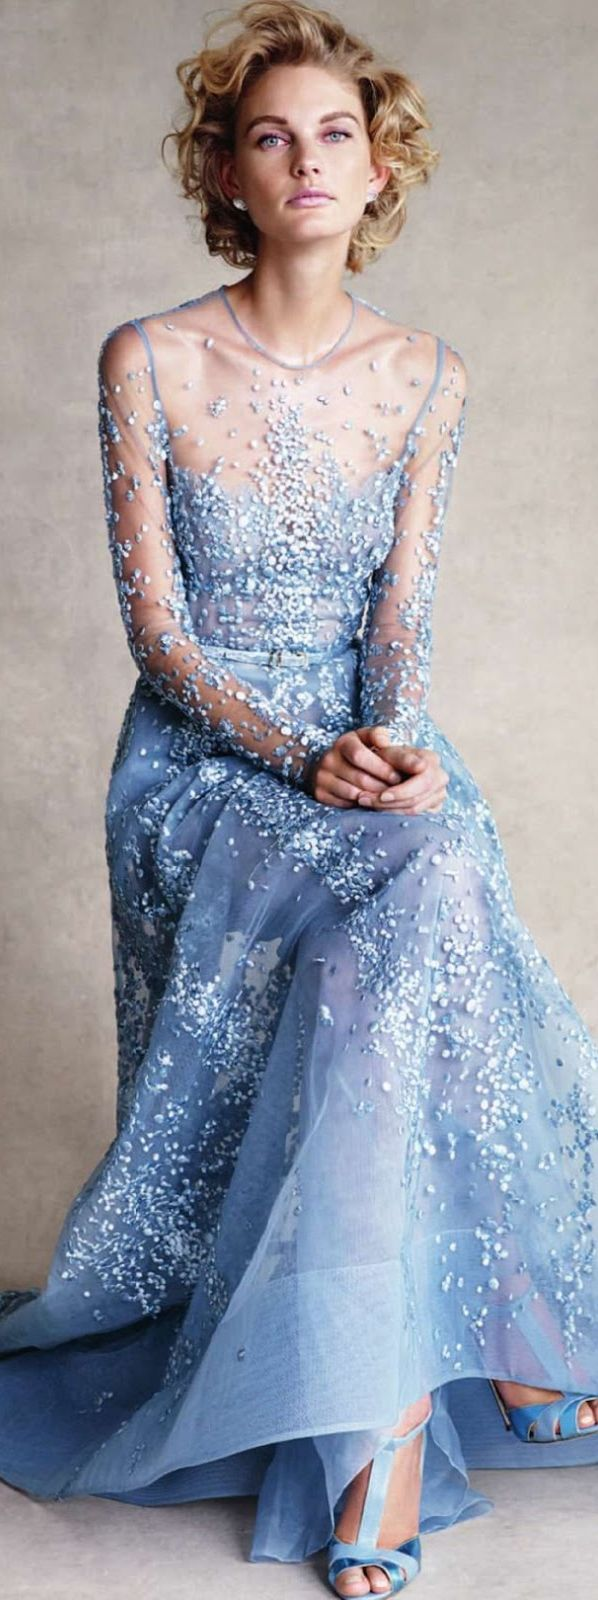 148 best ❤ Gowns ~ Evening Wear ❤ images on Pinterest | Cute ...